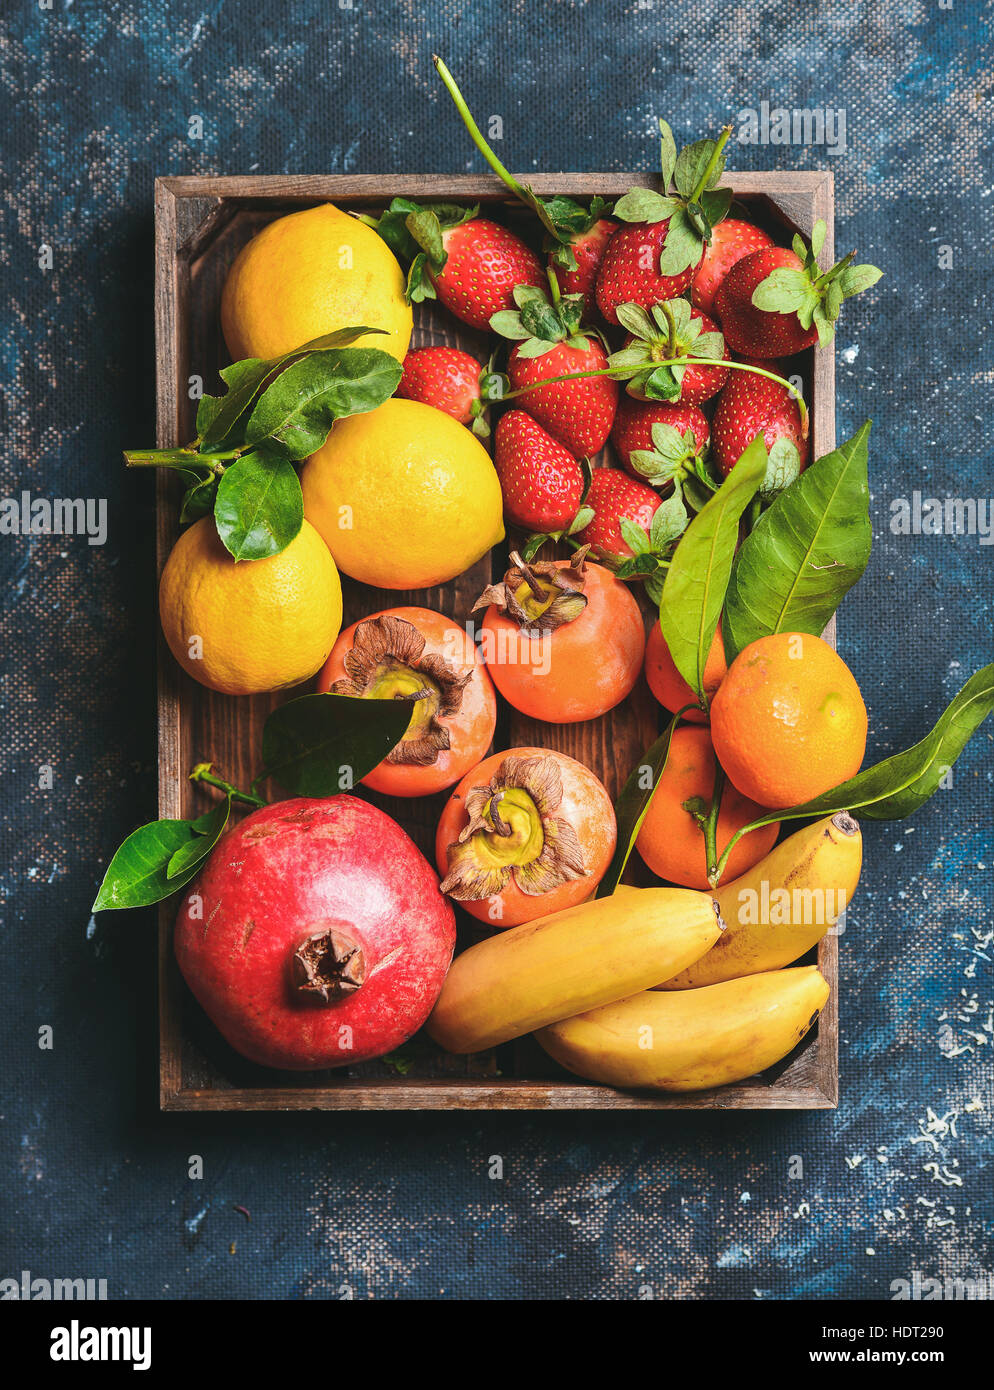 Oranges, lemons, pomegranate, bananas, strawberries and persimmon in wooden box - Stock Image